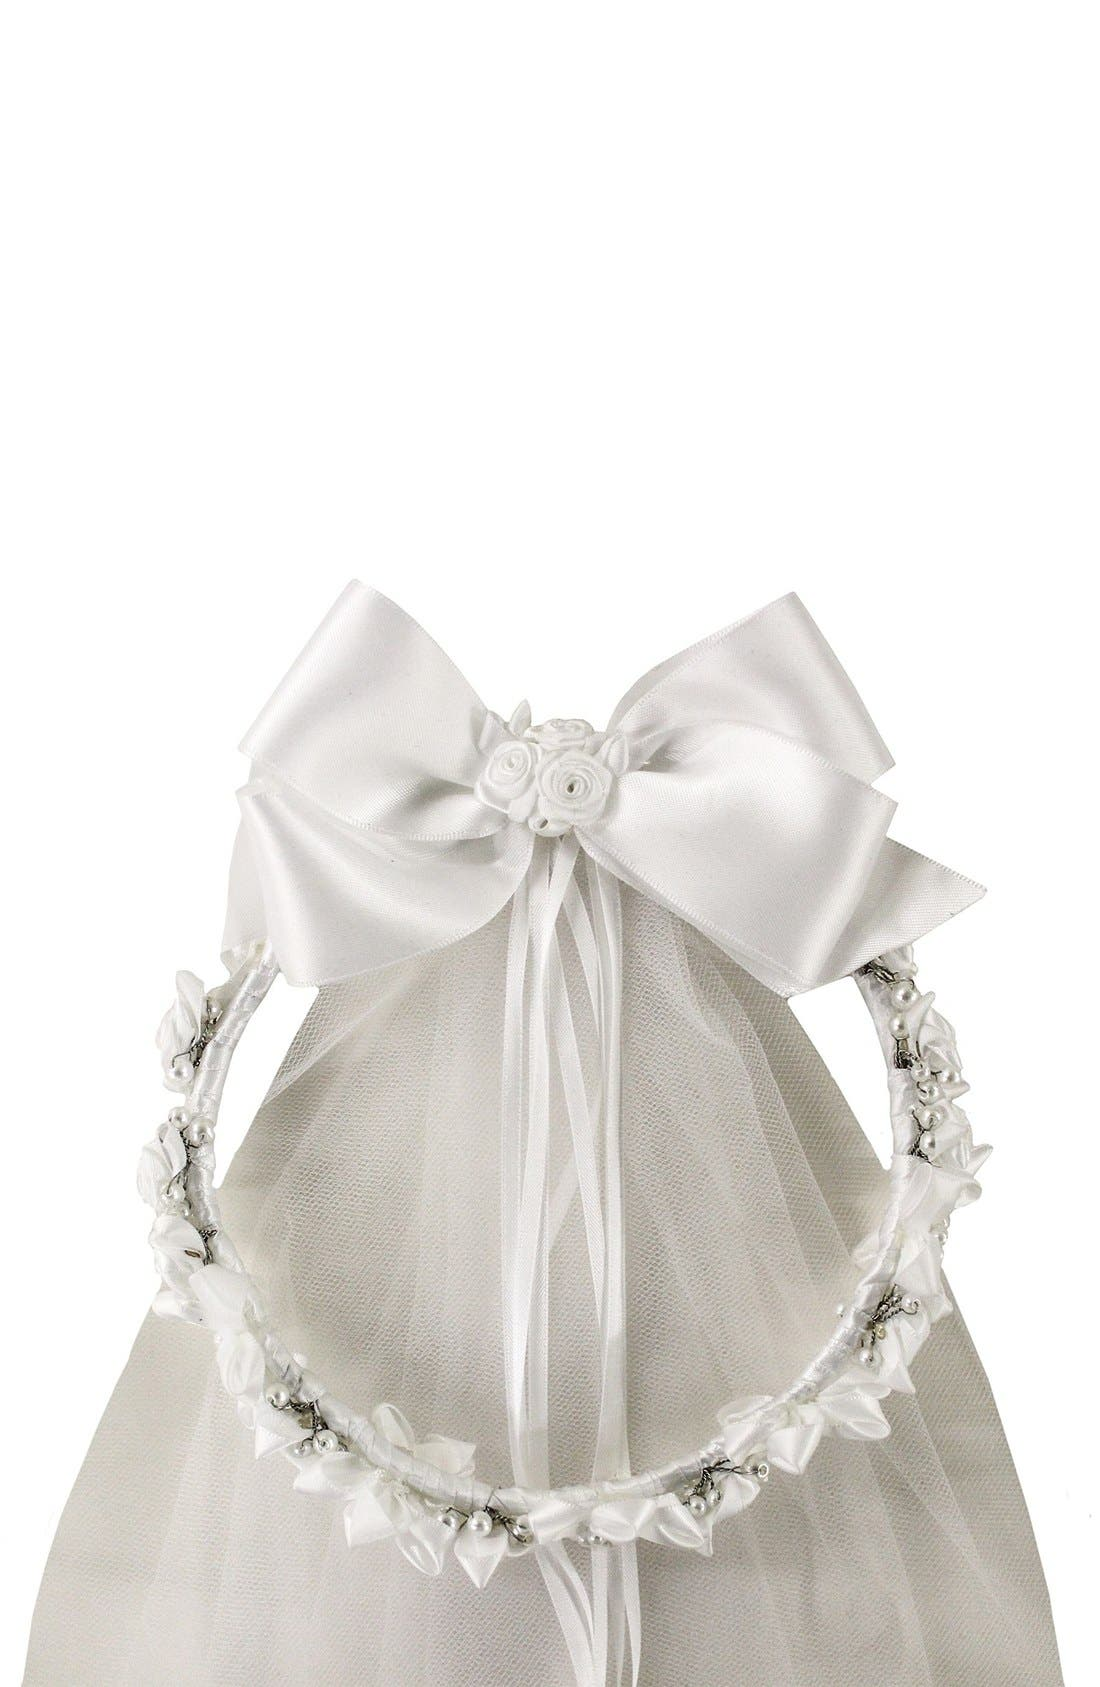 Communion Wreath with Removable Veil,                             Main thumbnail 1, color,                             100